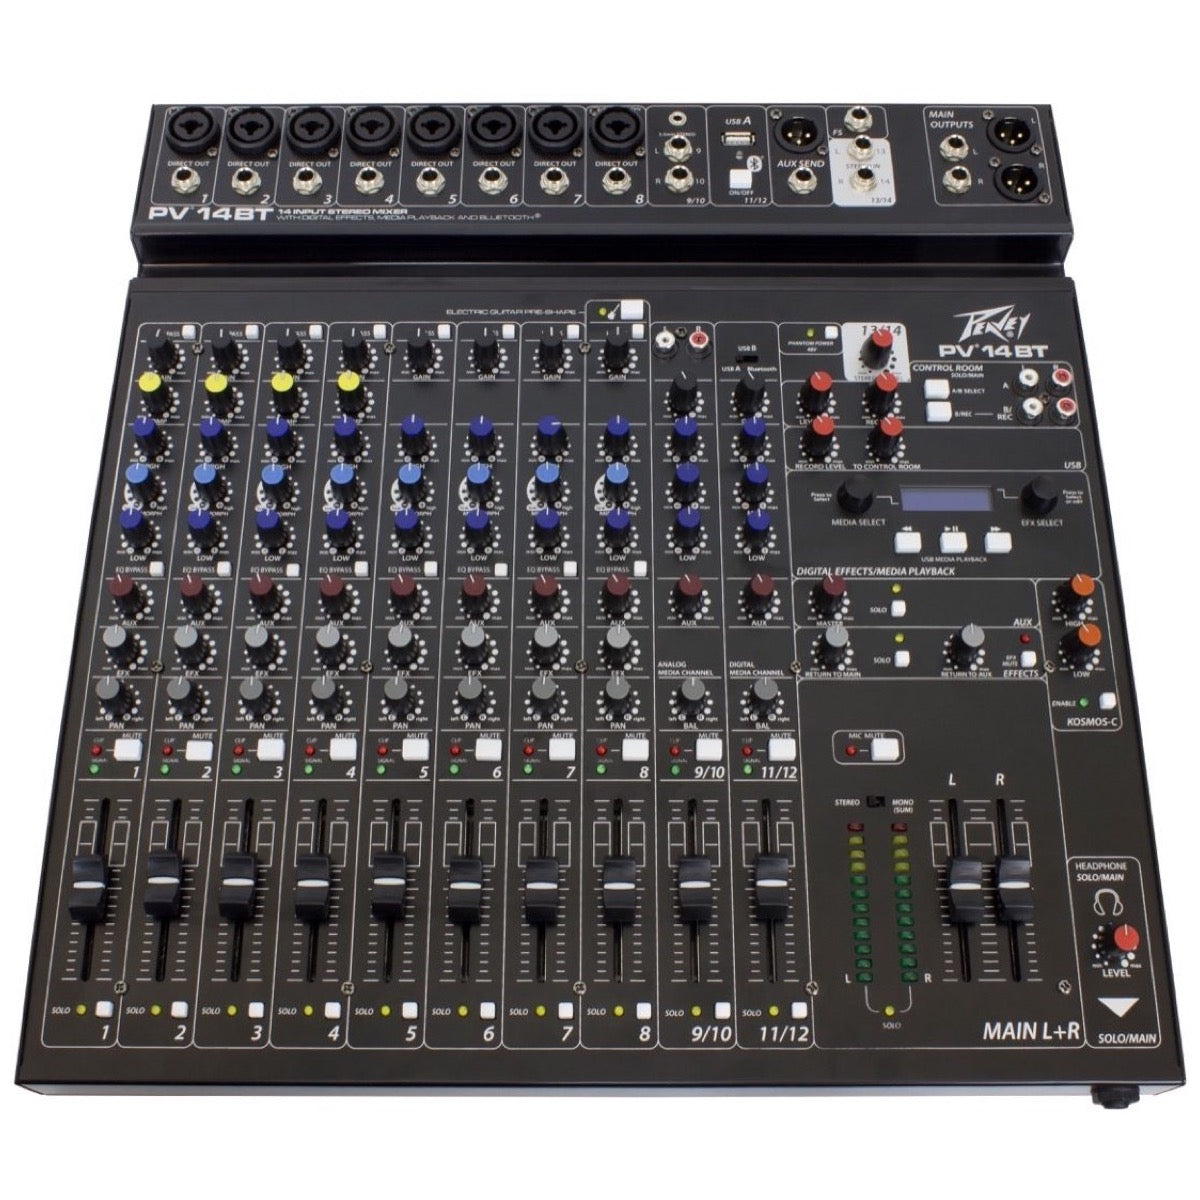 Peavey PV-14BT Stereo Bluetooth Mixer, 14-Channel